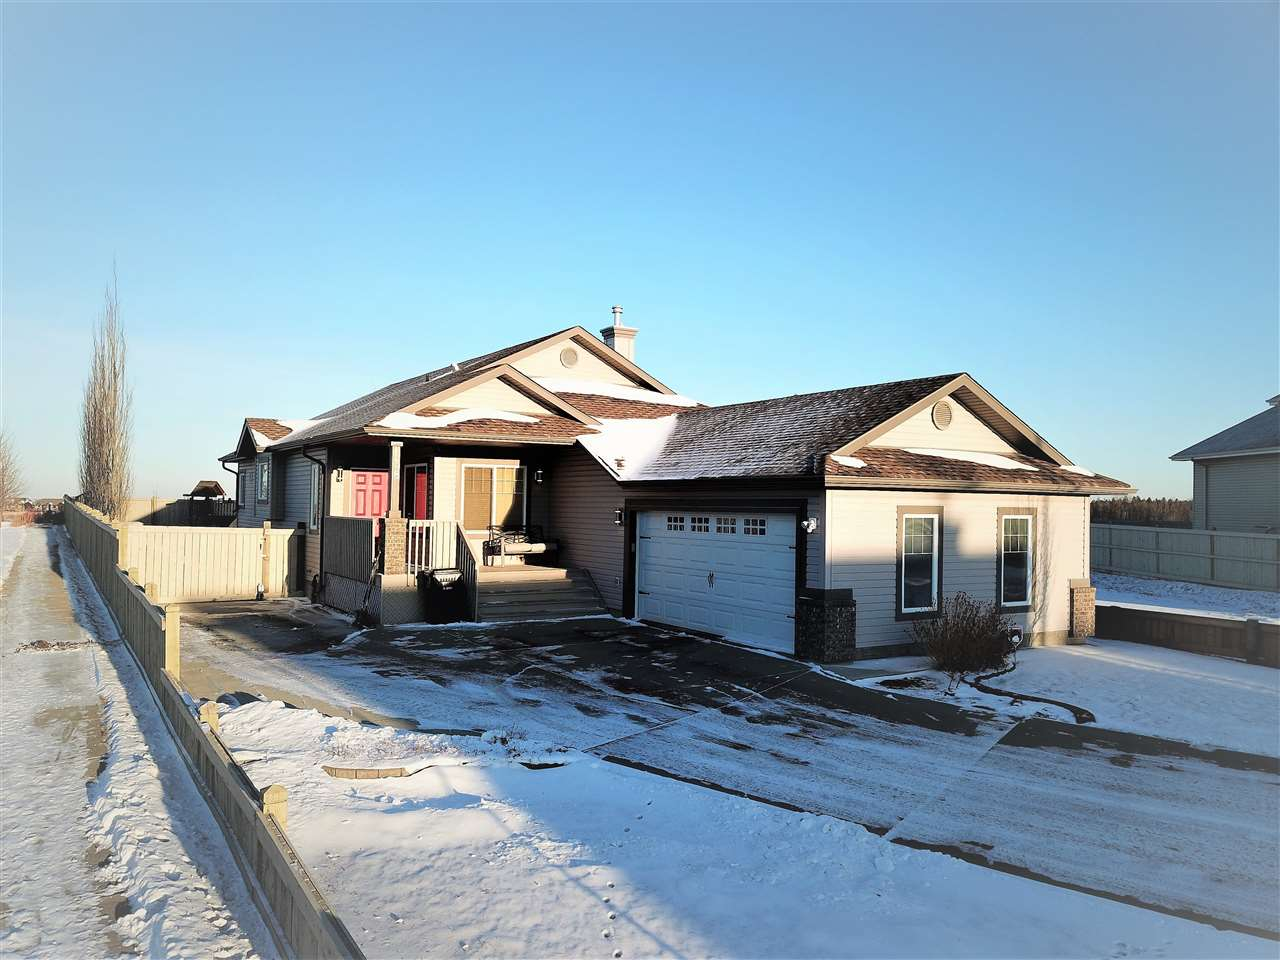 RARE opportunity to own this one-of-a-kind in Spruce Grove! Massive yard, 32x20 attached garage, fully finished bungalow makes this home ready for your family to call it yours. Located on the east side of Spruce Grove is this 1500+ sq ft bungalow that makes you feel right at home upon entering! The main floor living areas are full of open spaces with a spacious den, massive kitchen that is set for hosting many, dinette area surrounded by east facing windows, and a living room that is fantastic for just the way you live! The generous sized master retreat features a walk-in closet and a huge ensuite! The basement is fully finished with two bedrooms, another full bathroom and a huge recreation area! Enjoy the possibilities in your massive backyard and enjoy those family BBQ's! There is a large side gate that provides great access to the backyard for storage and functionality! All of this and more located near many walking paths, parks, and Century Crossing! Make this home yours today!